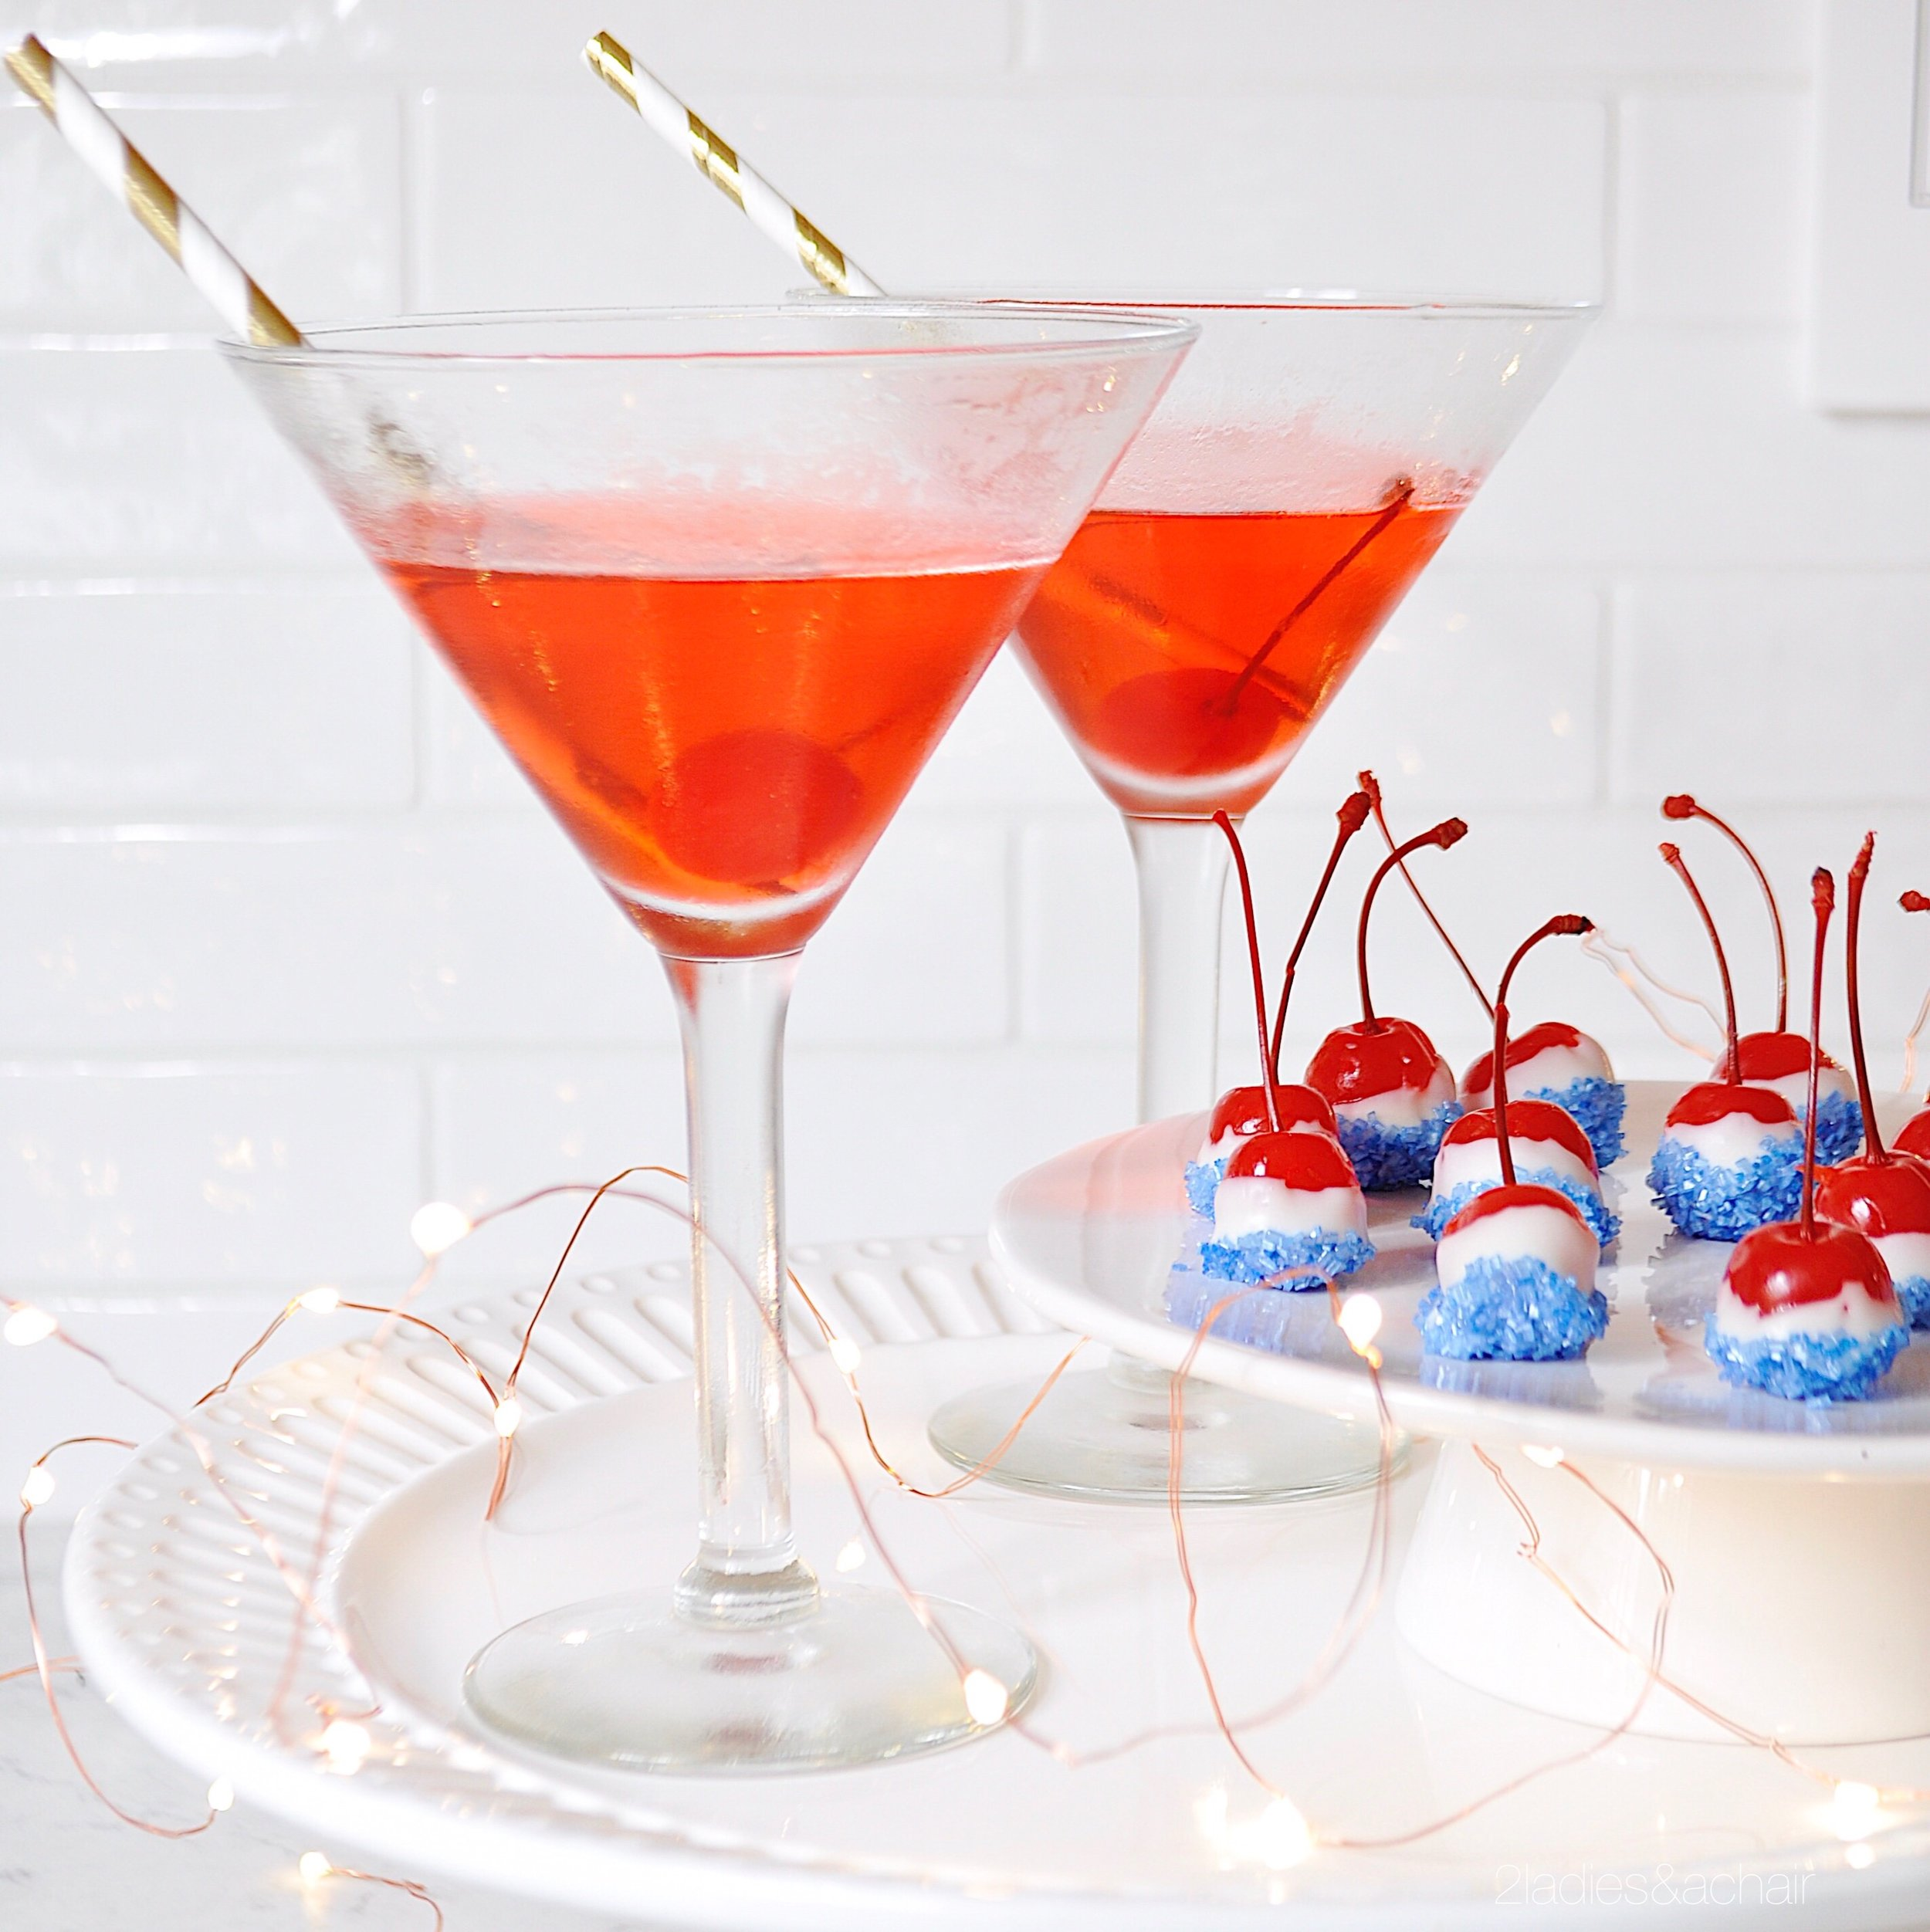 july 4th party ideas IMG_1028.JPG